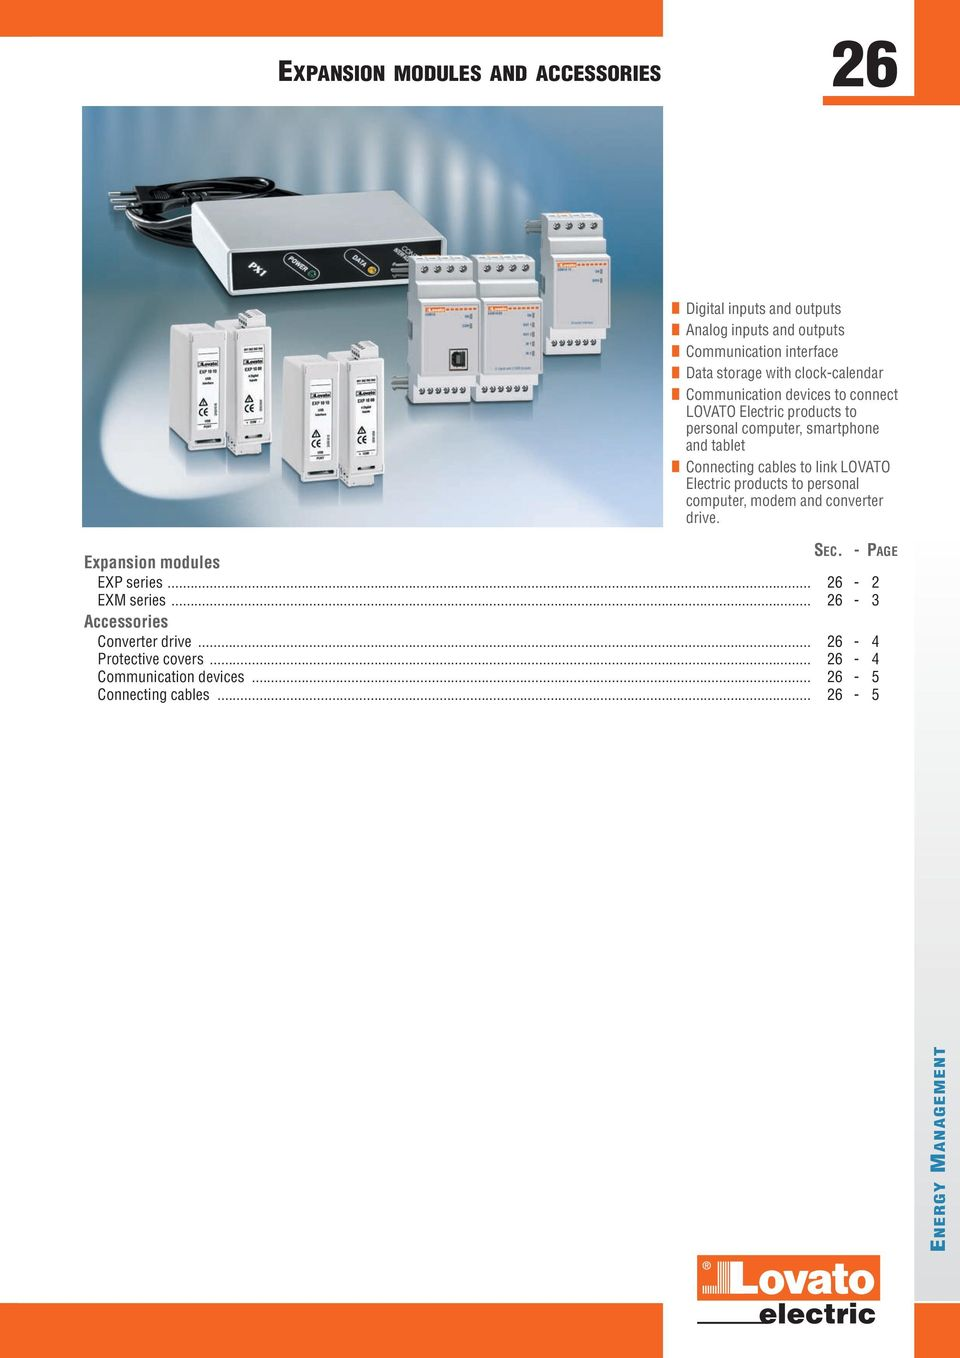 link LOVATO Electric products to sonal computer, modem and converter drive. SEC. -PAGE Expansion modules EXP series... 26-2 EXM series.